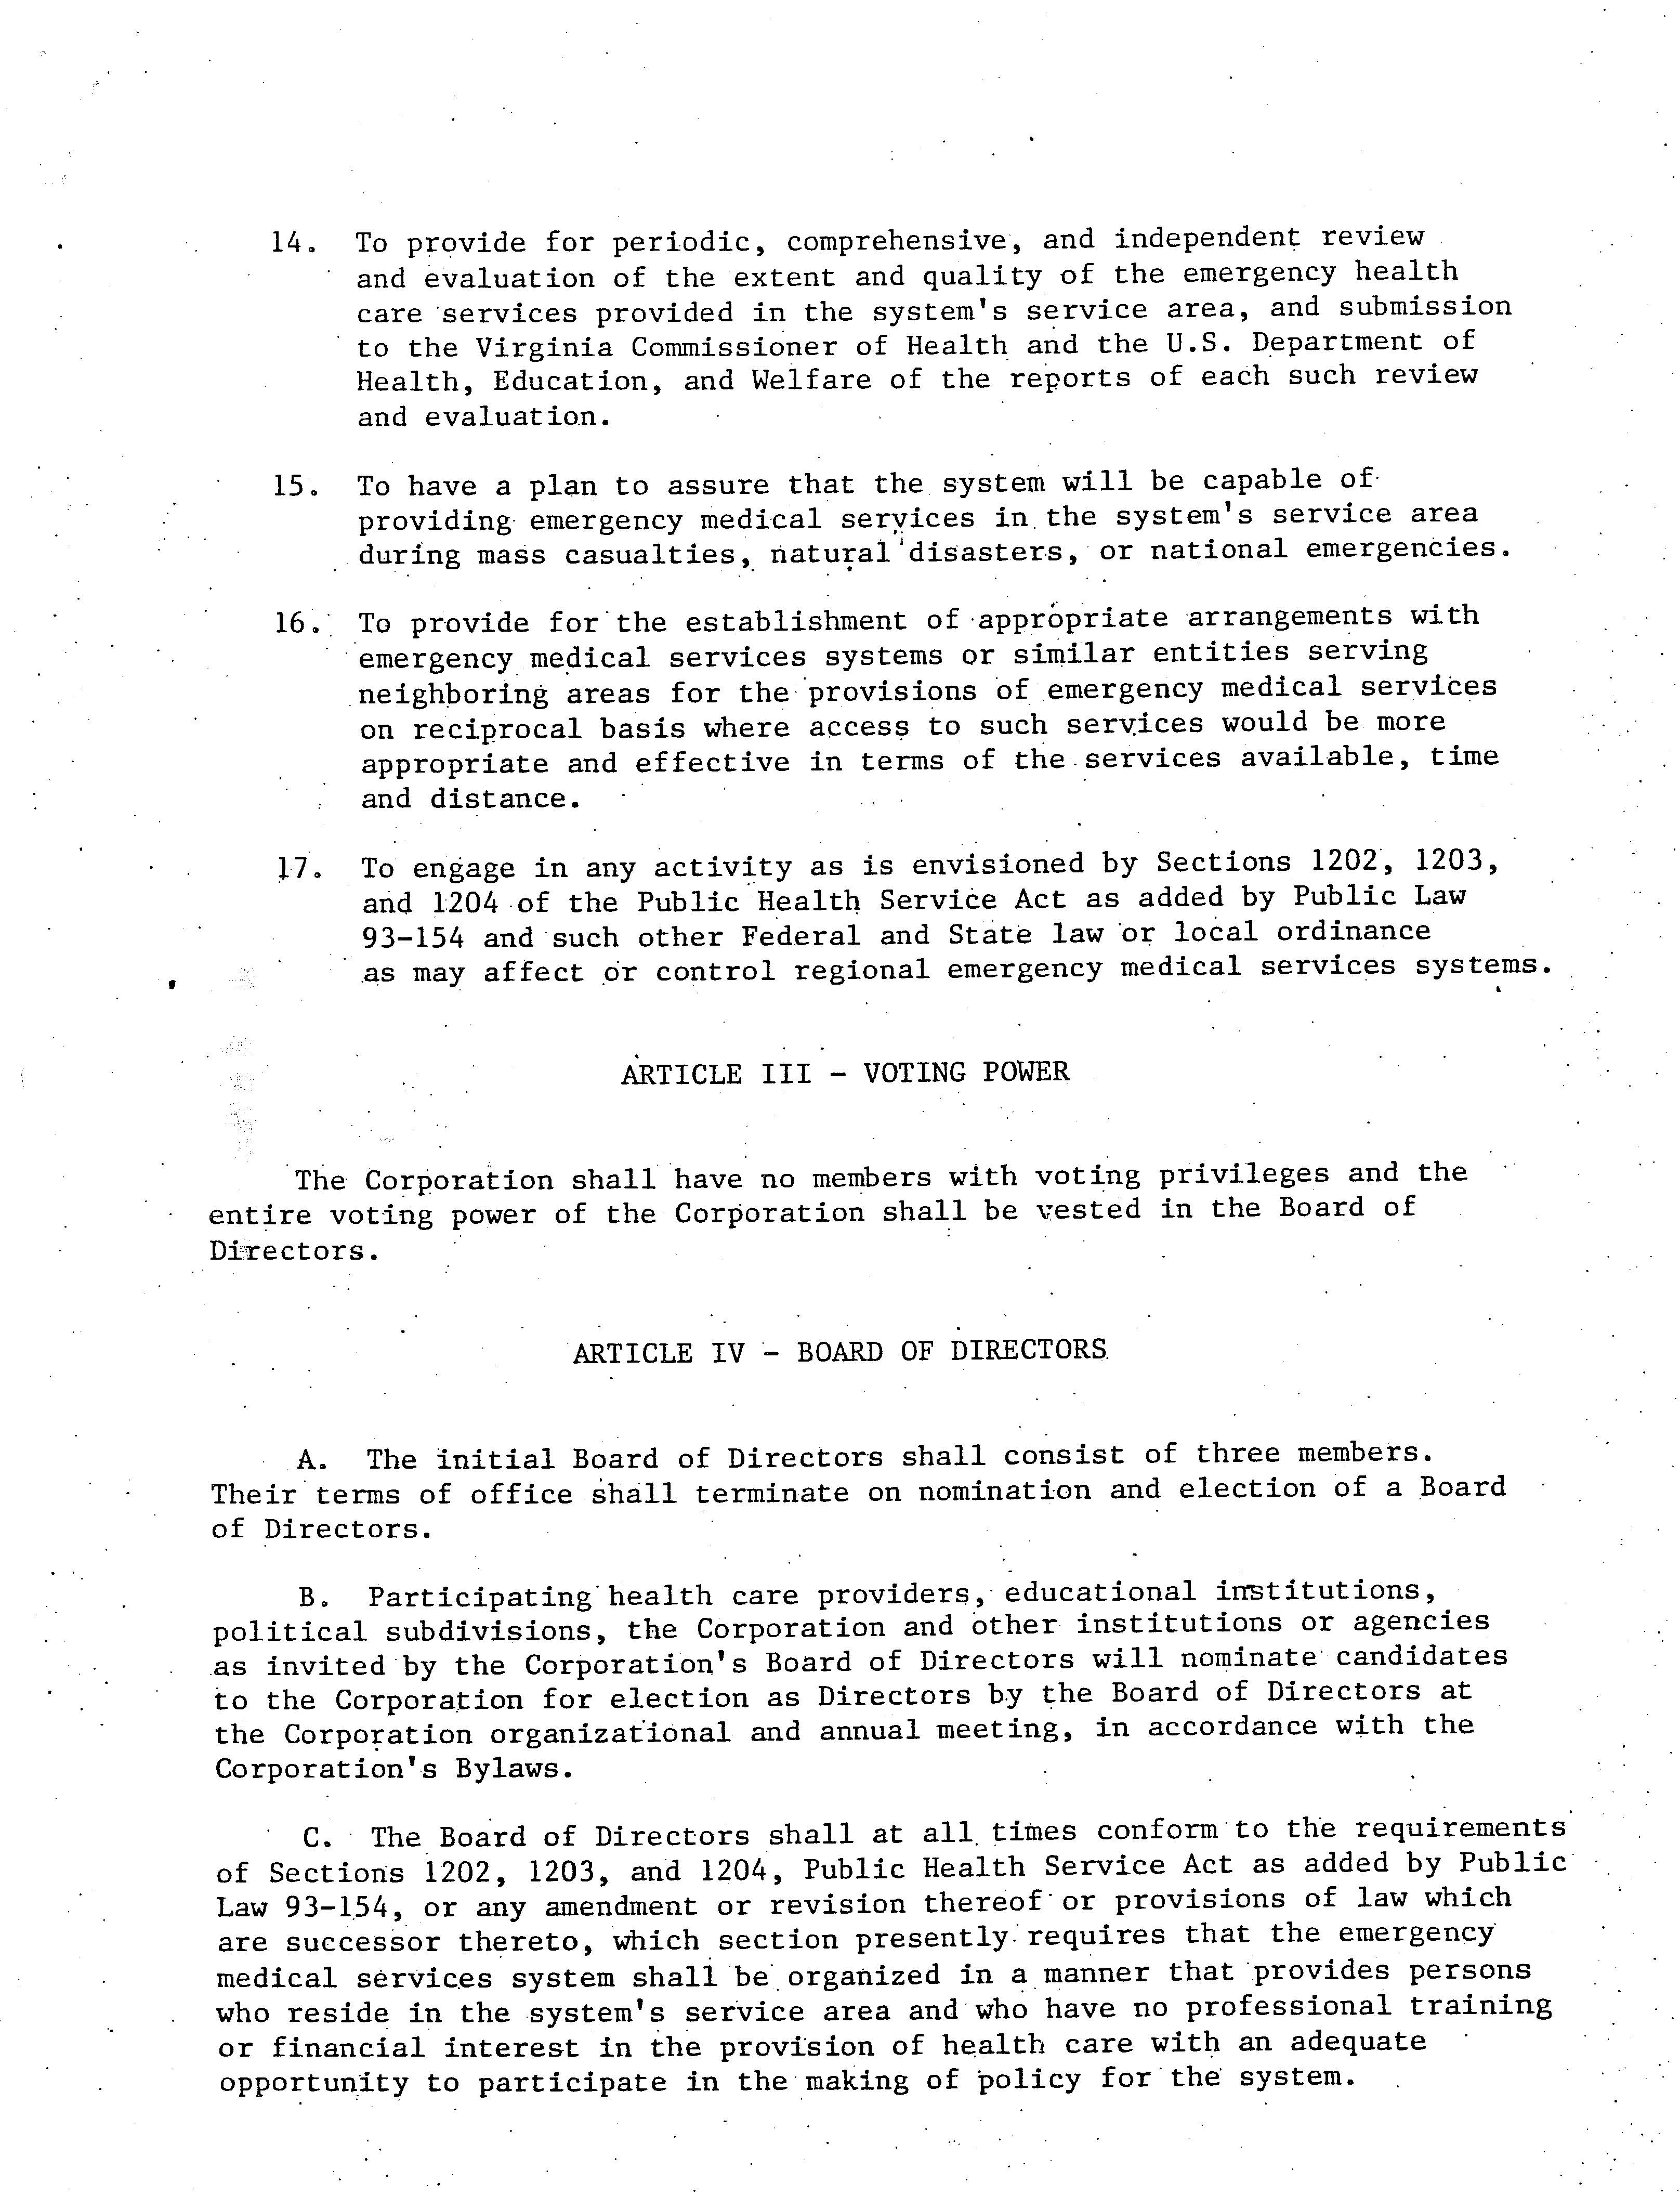 PEMS Articles of Incorporation Page 3